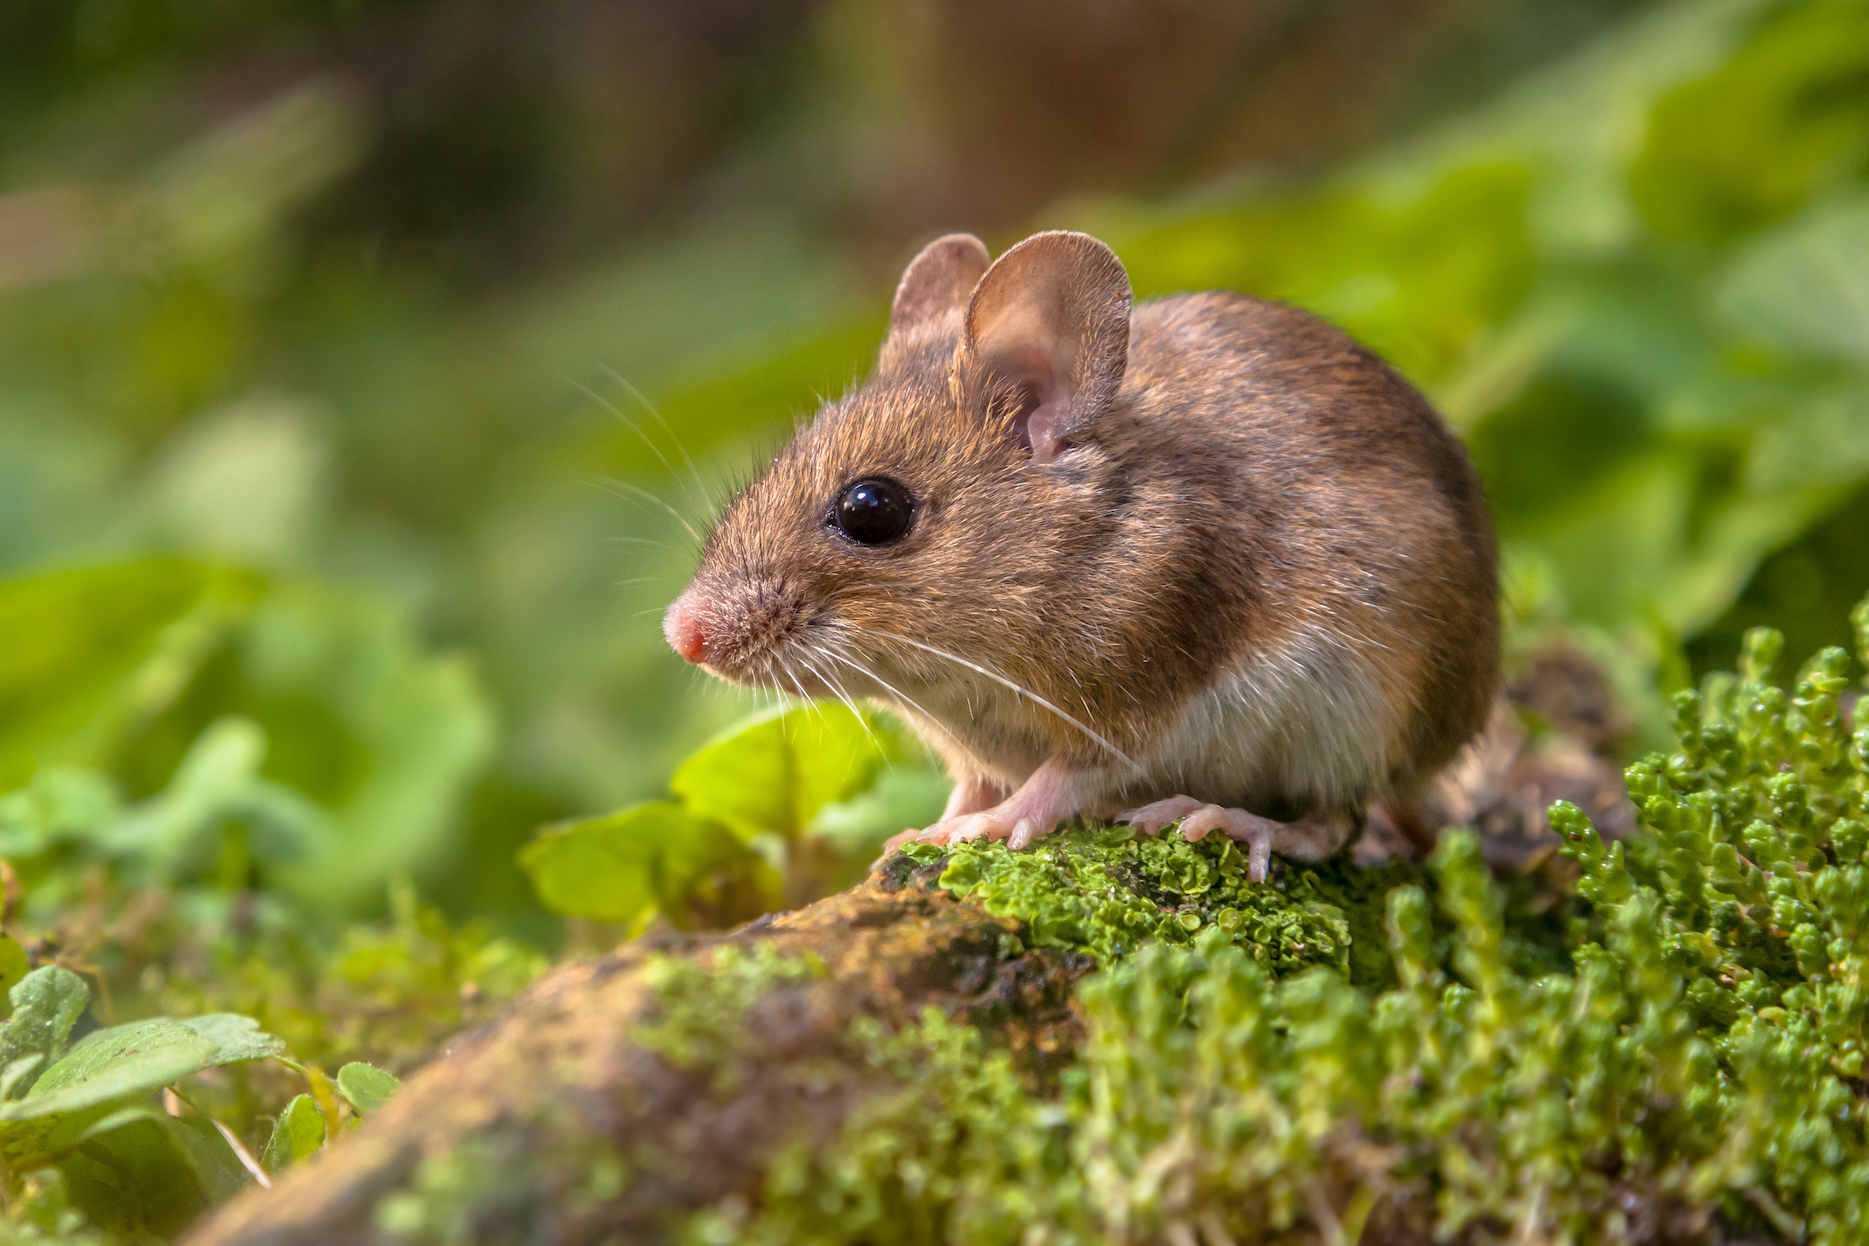 Researchers studied whether aggression in male mice is due to environmental factors or if they are genetically predisposed to this behavior.